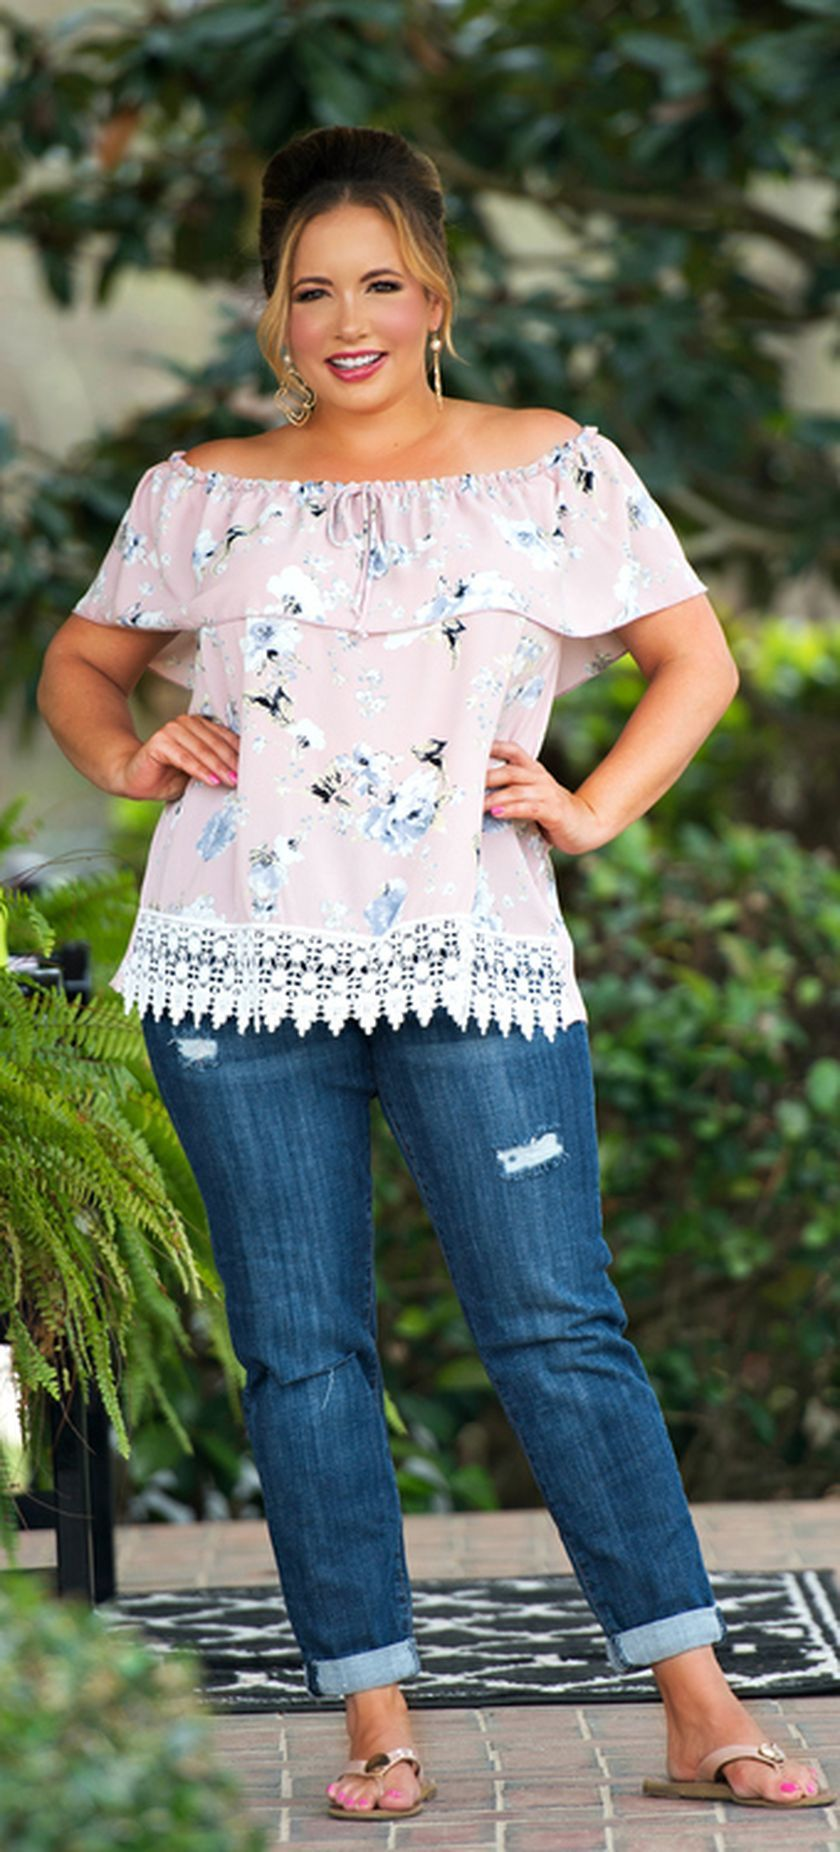 Best Summer Street Style: Pin By Luxnplus On Full Figured Fashion